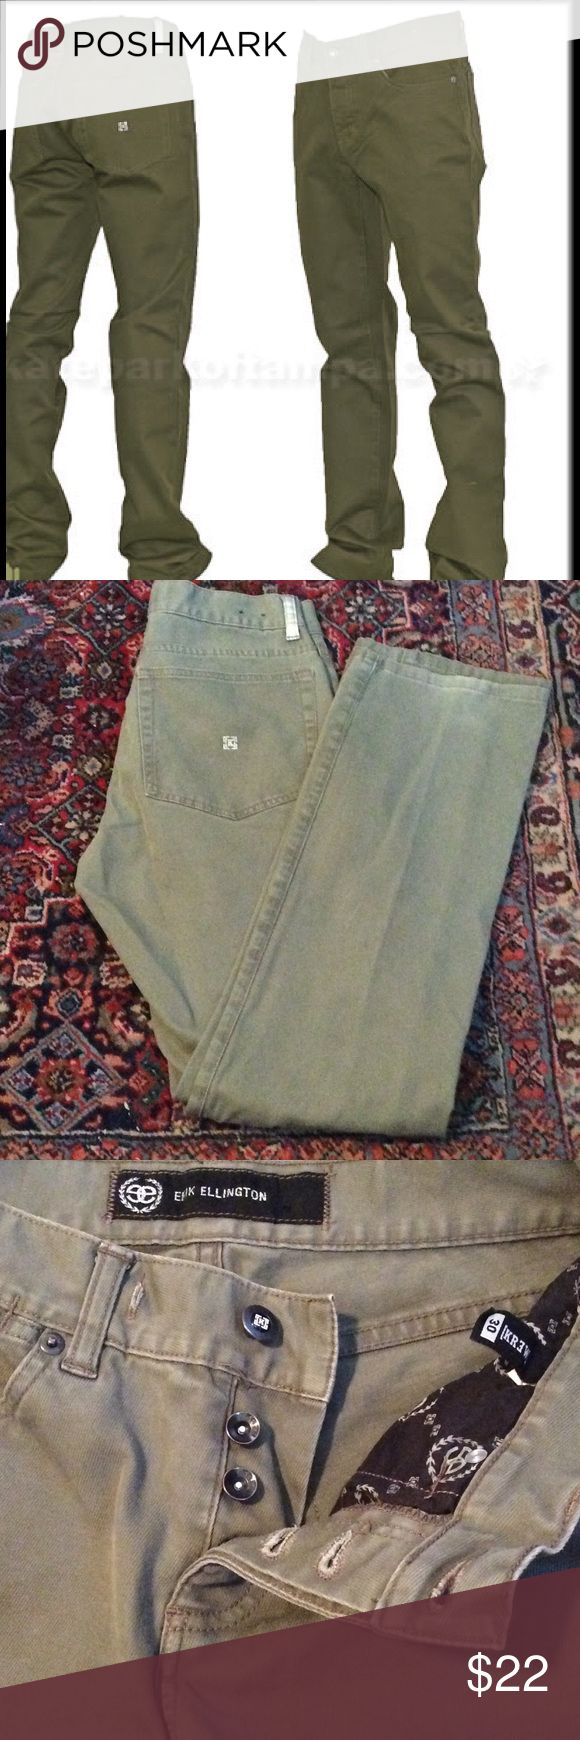 Erik Ellington Krew EE Slims Twill jeans Medium/fair condition. Price reflects. 4 buttons in front. 98% cotton 2% spandex Erik Ellington Krew Jeans